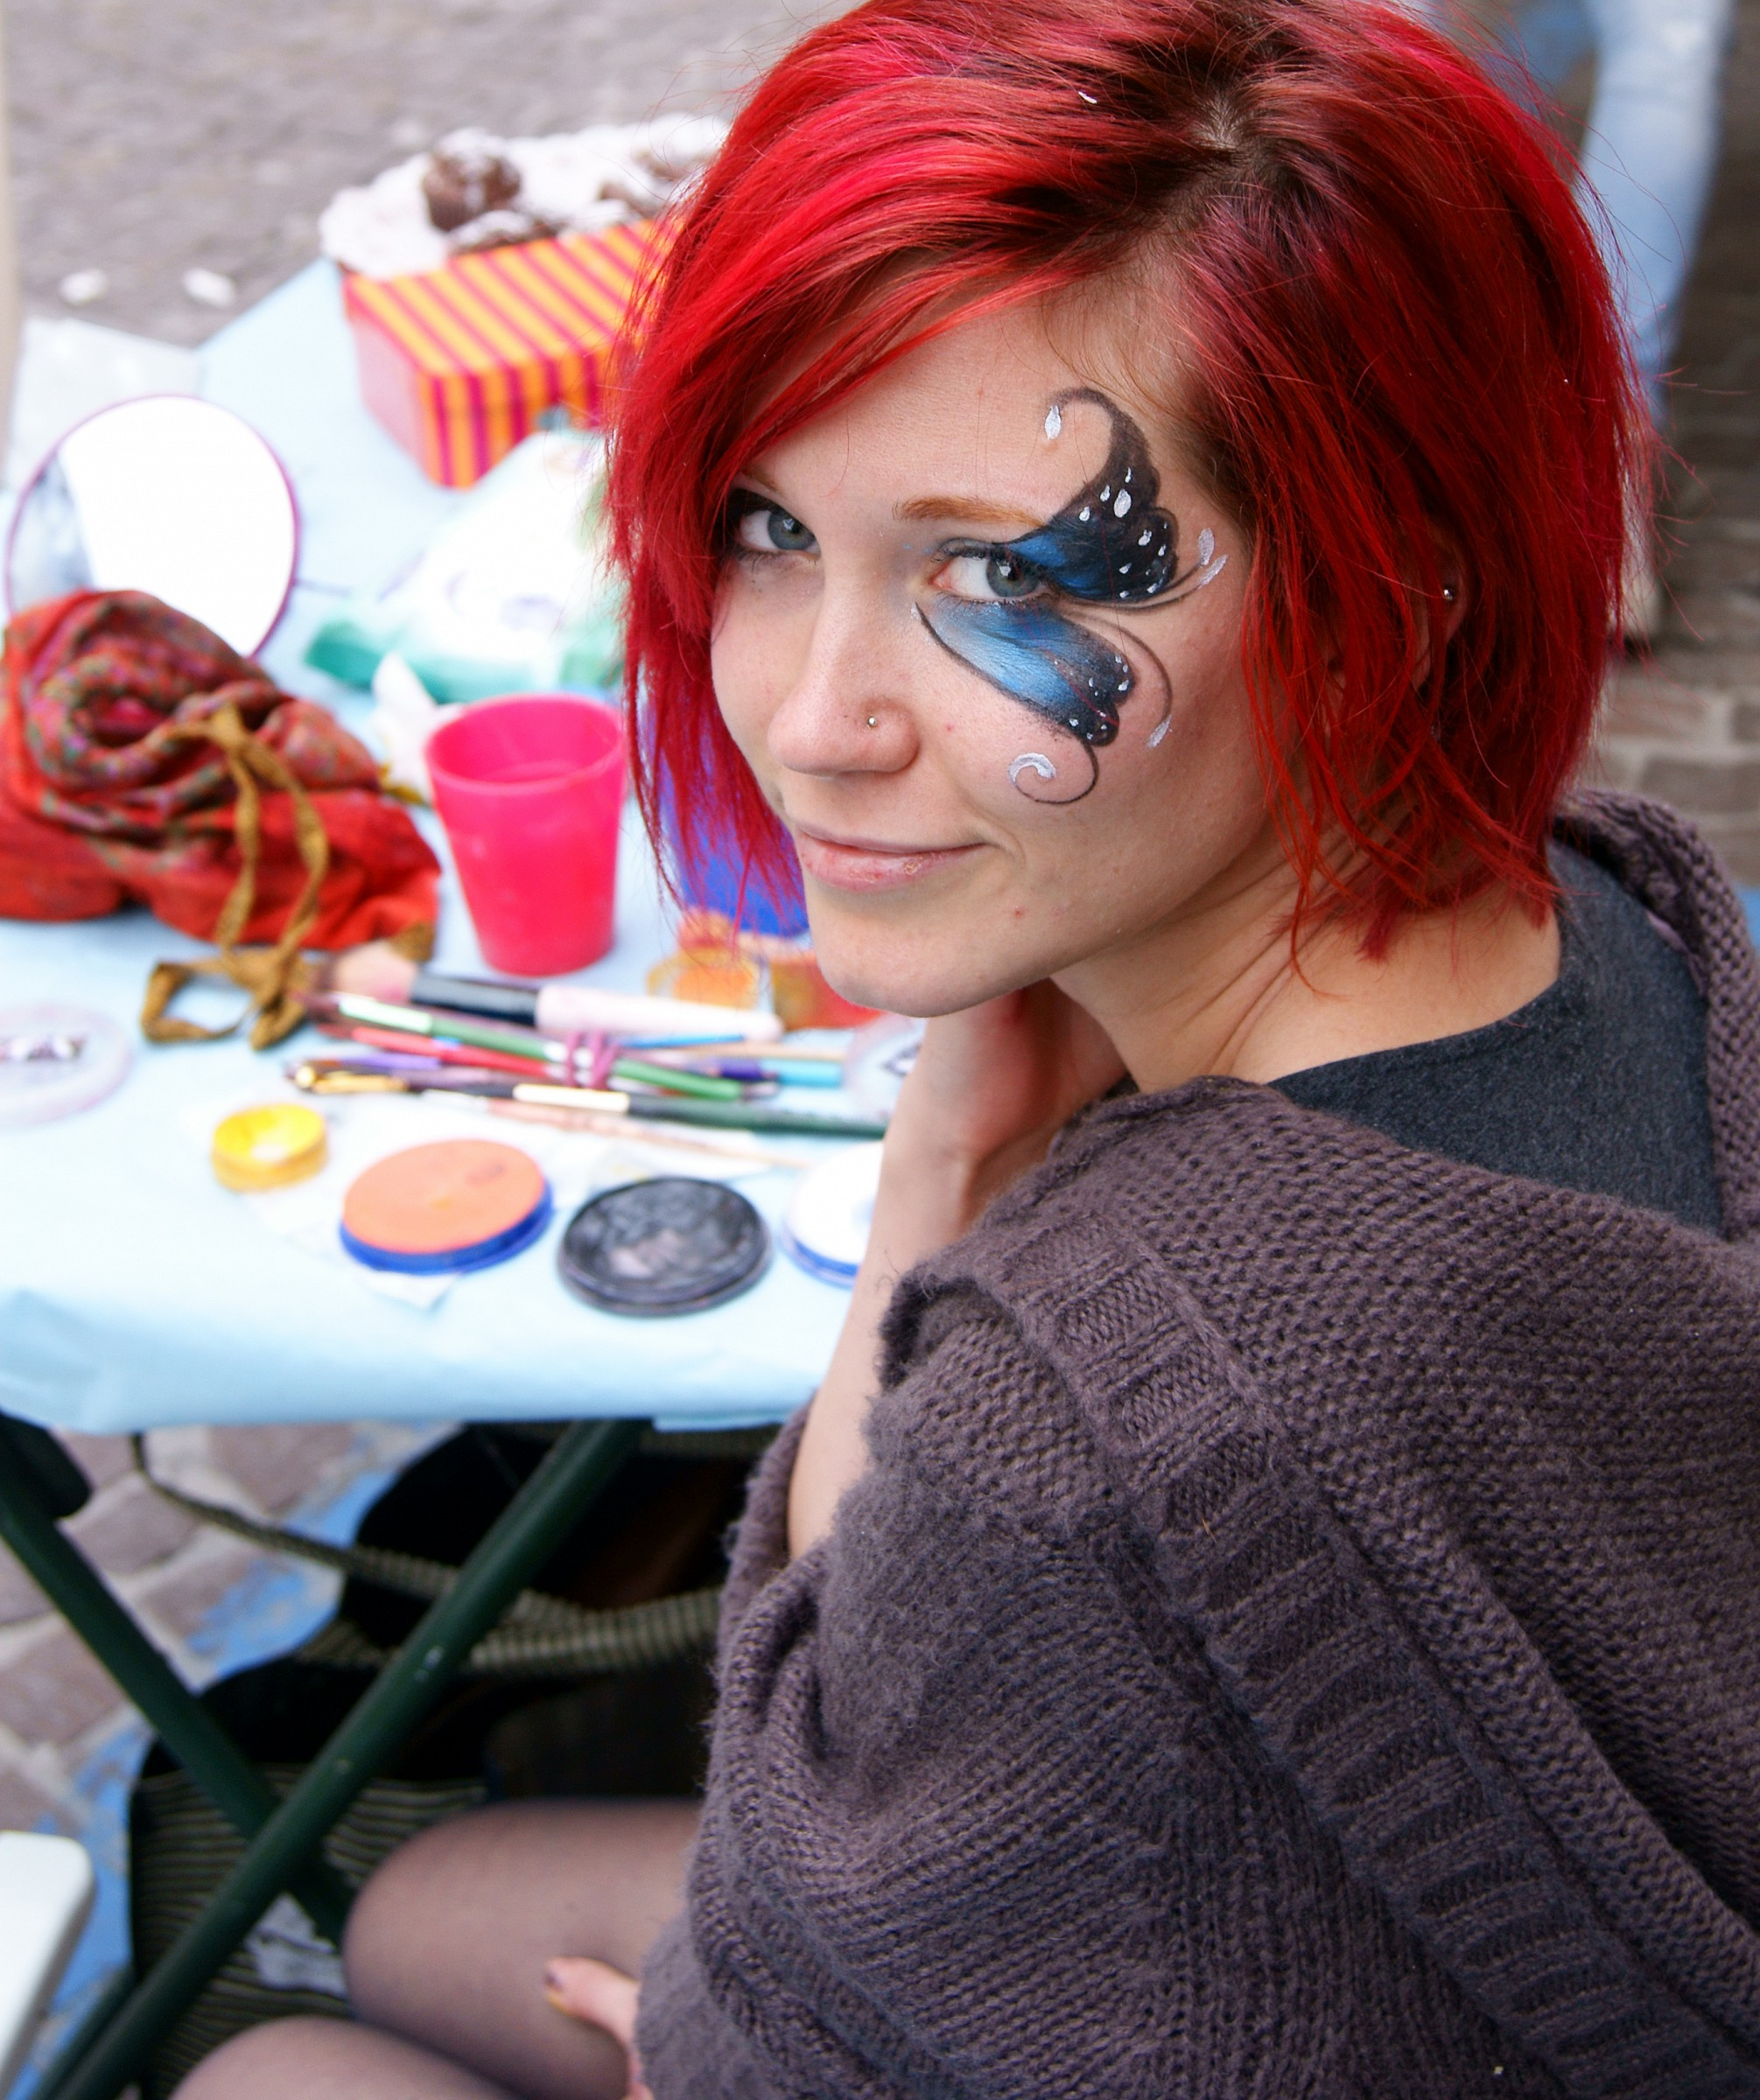 The face painting ......